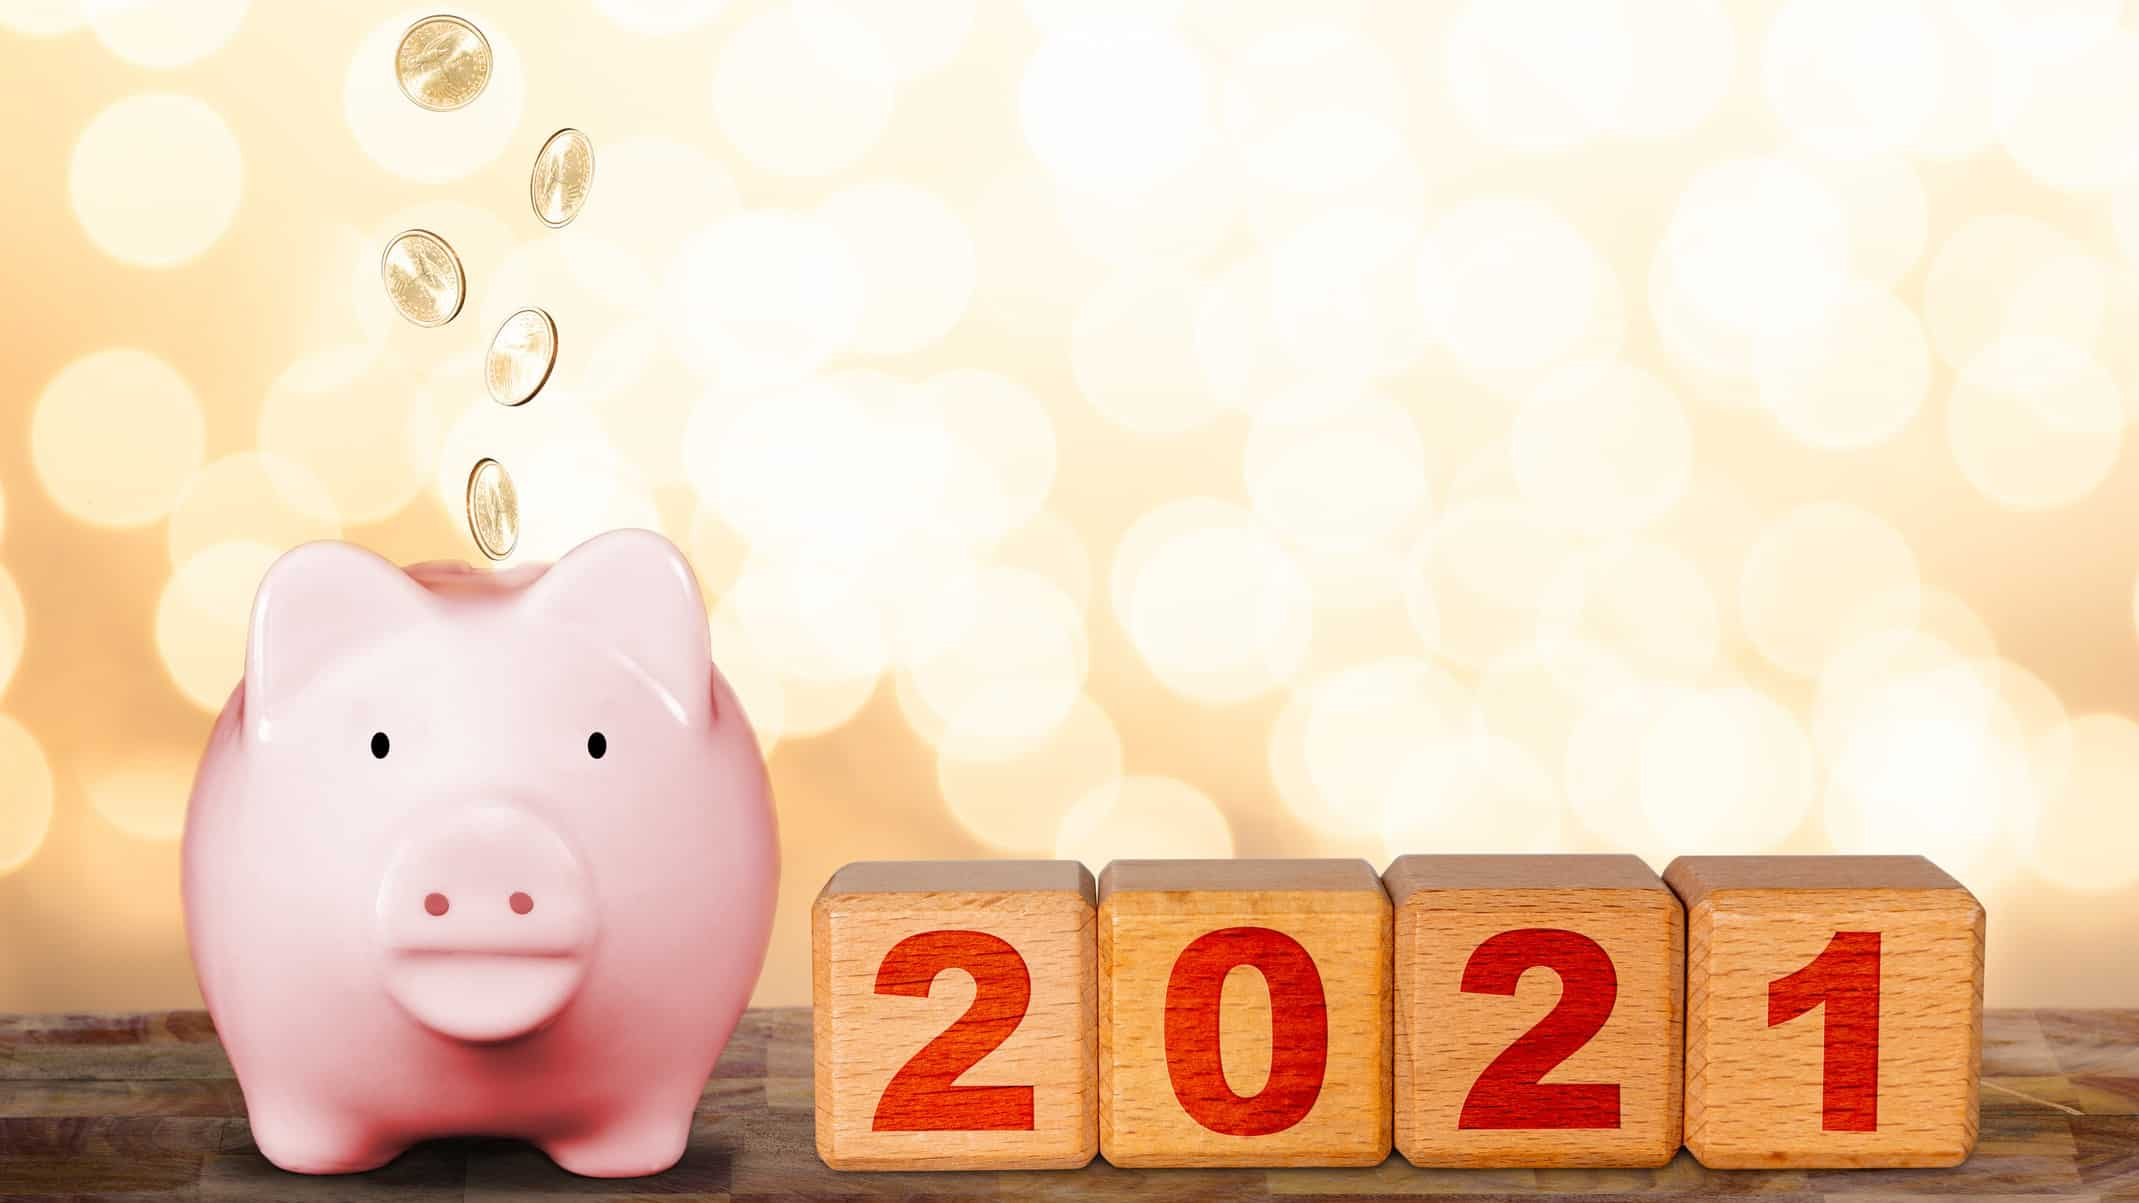 mineral resources top ascx shares to buy in 2021 represented by piggy bank sitting alongside wooden blocks saying 2021